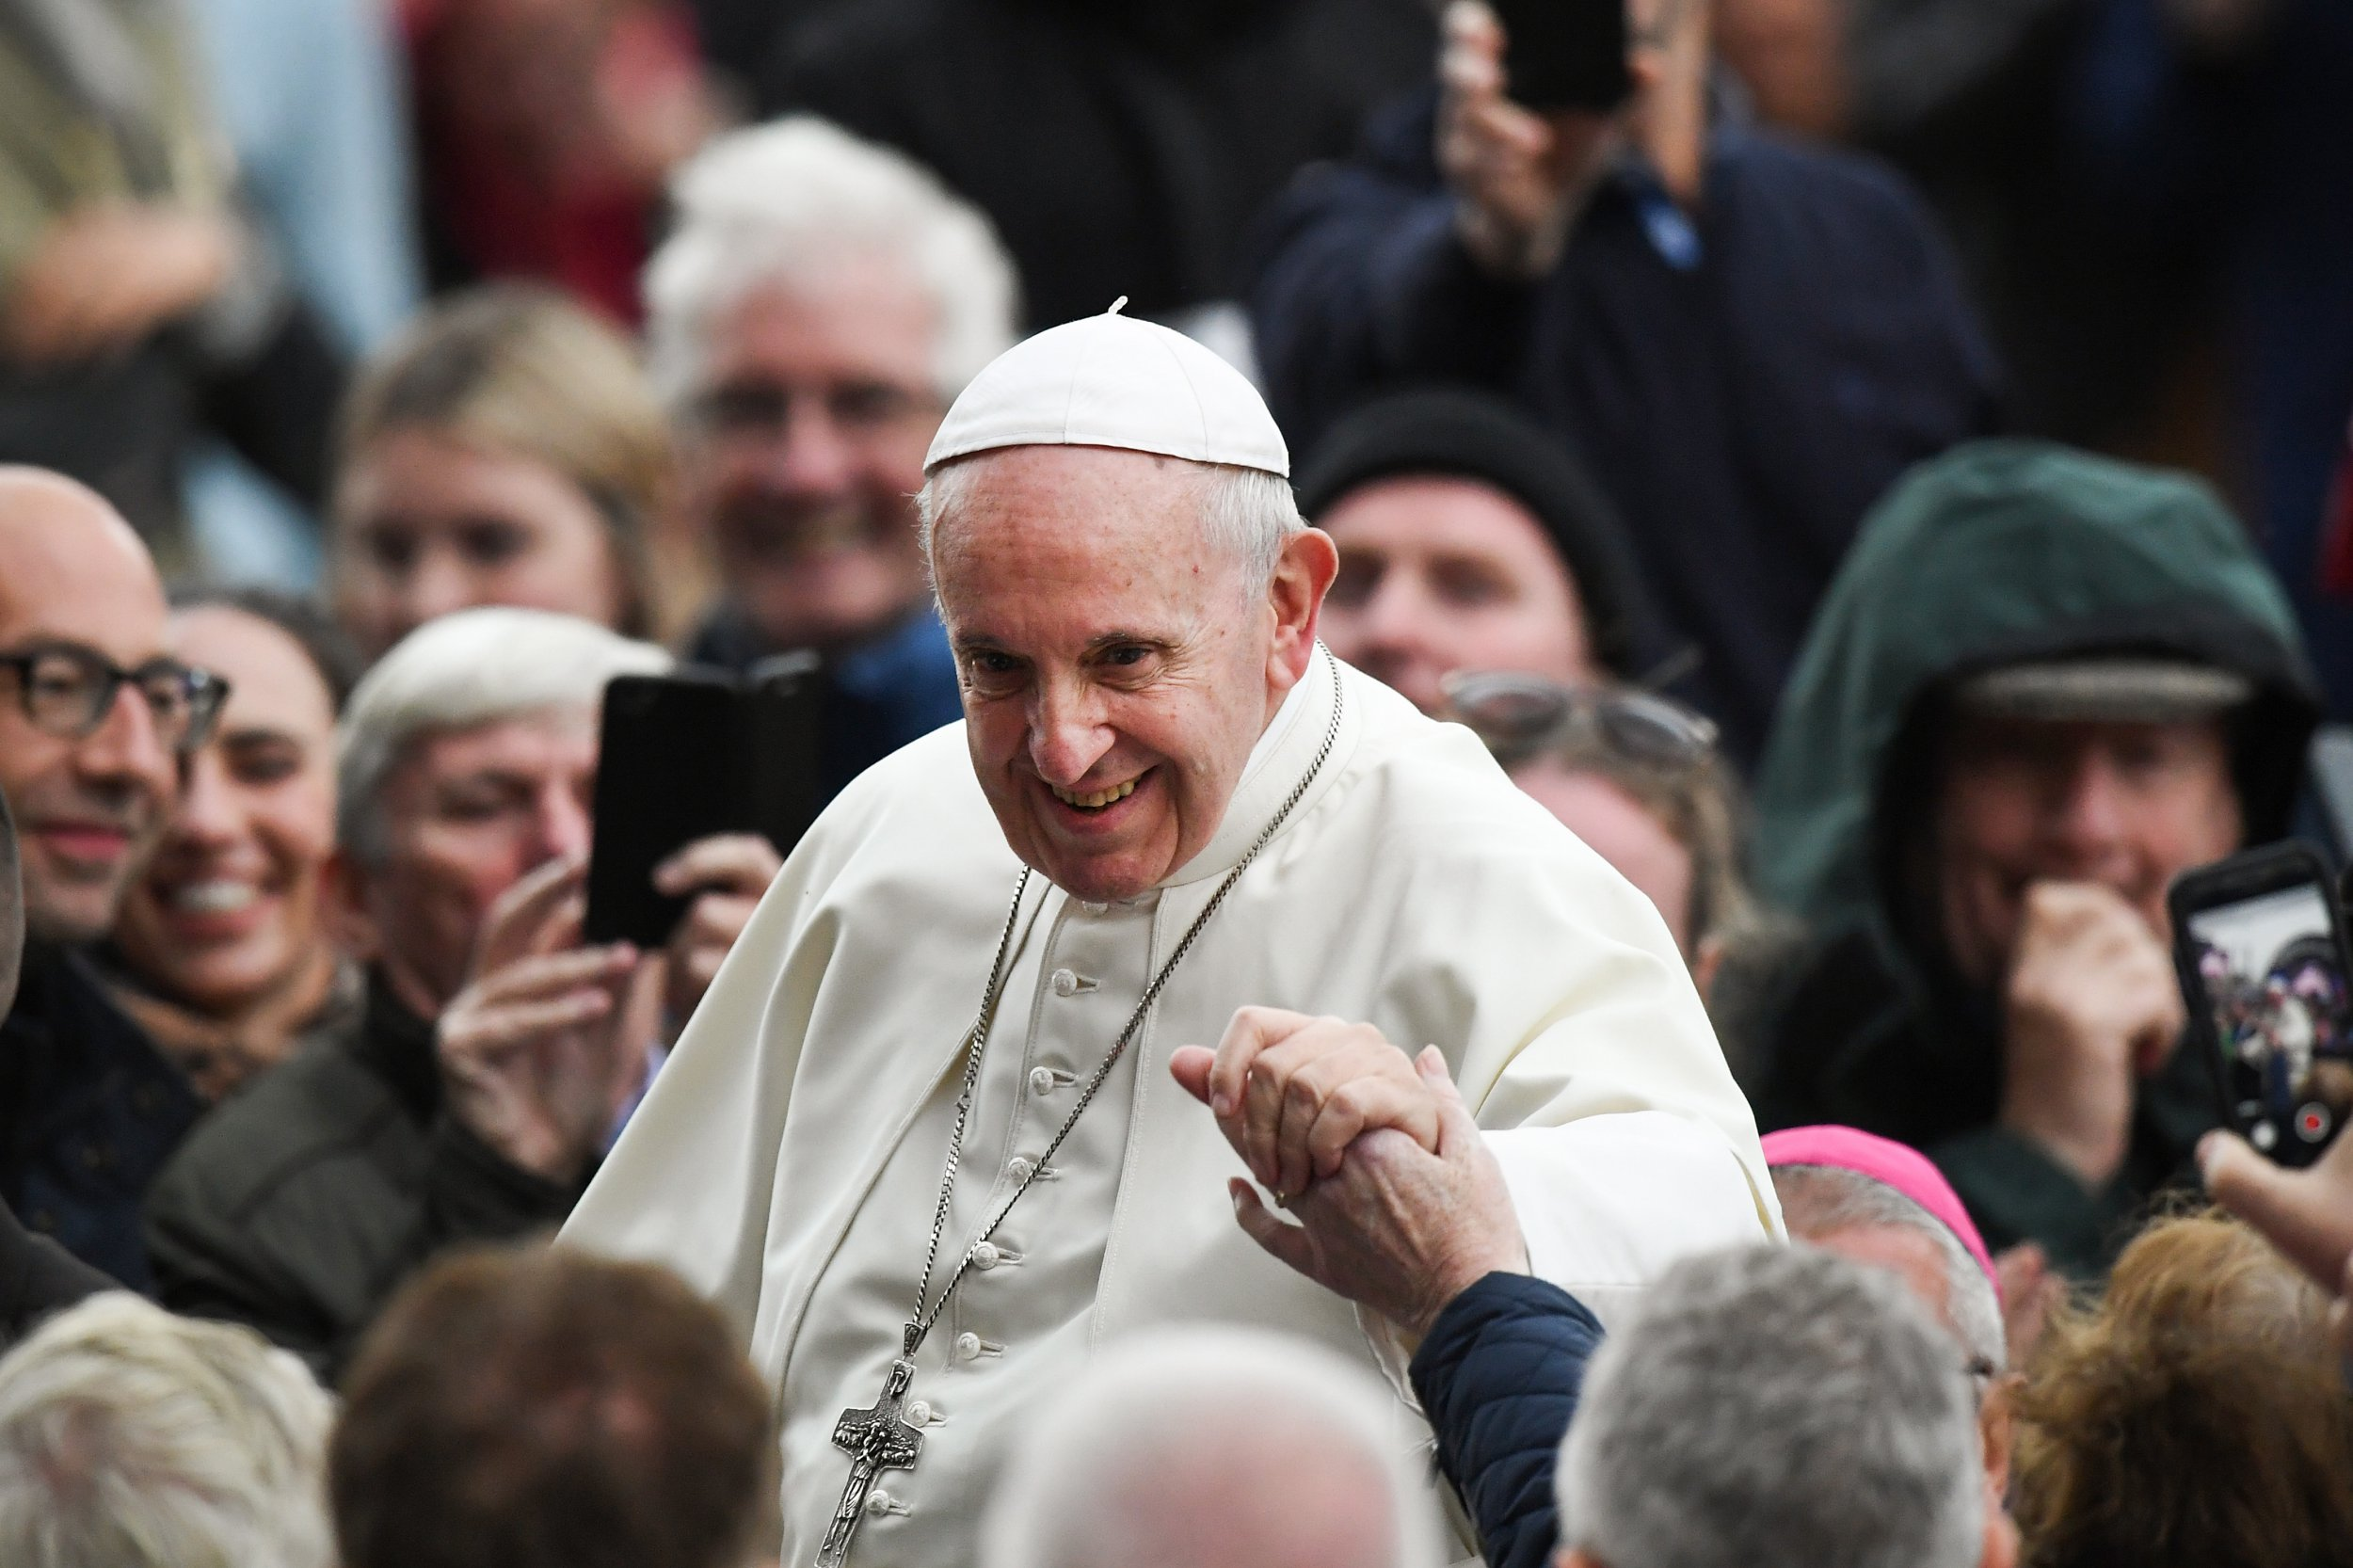 DUBLIN, IRELAND - AUGUST 25: Pope Francis attends the festival of families at Croke Park on 25 August , 2018 in Dublin, Ireland.Pope Francis is the 266th Catholic Pope and current sovereign of the Vatican. His visit, the first by a Pope since John Paul II's in 1979, is expected to attract hundreds of thousands of Catholics to a series of events in Dublin and Knock. During his visit he will have private meetings with victims of sexual abuse by Catholic clergy. (Photo by Jeff J Mitchell/Getty Images)